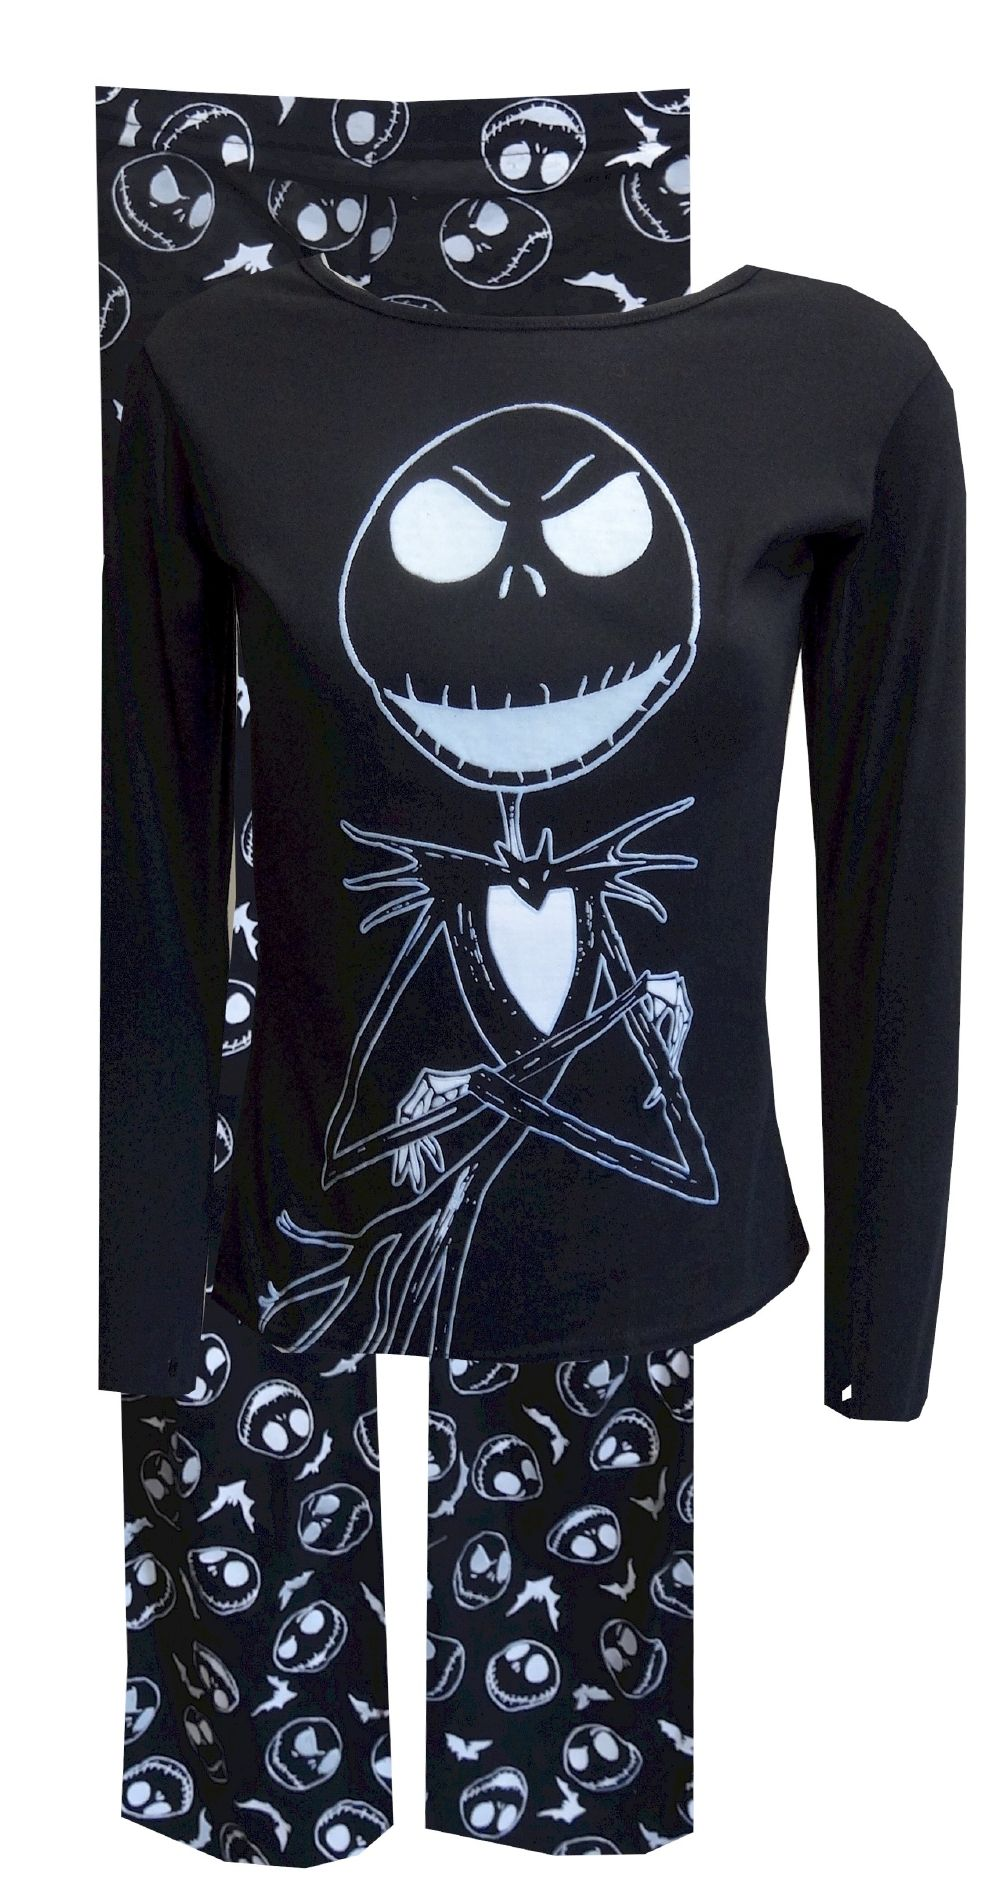 Jack skellington bathroom set - Nightmare Before Christmas Jack Skellington Pajama 38 Calling All Jack Skellington Fans